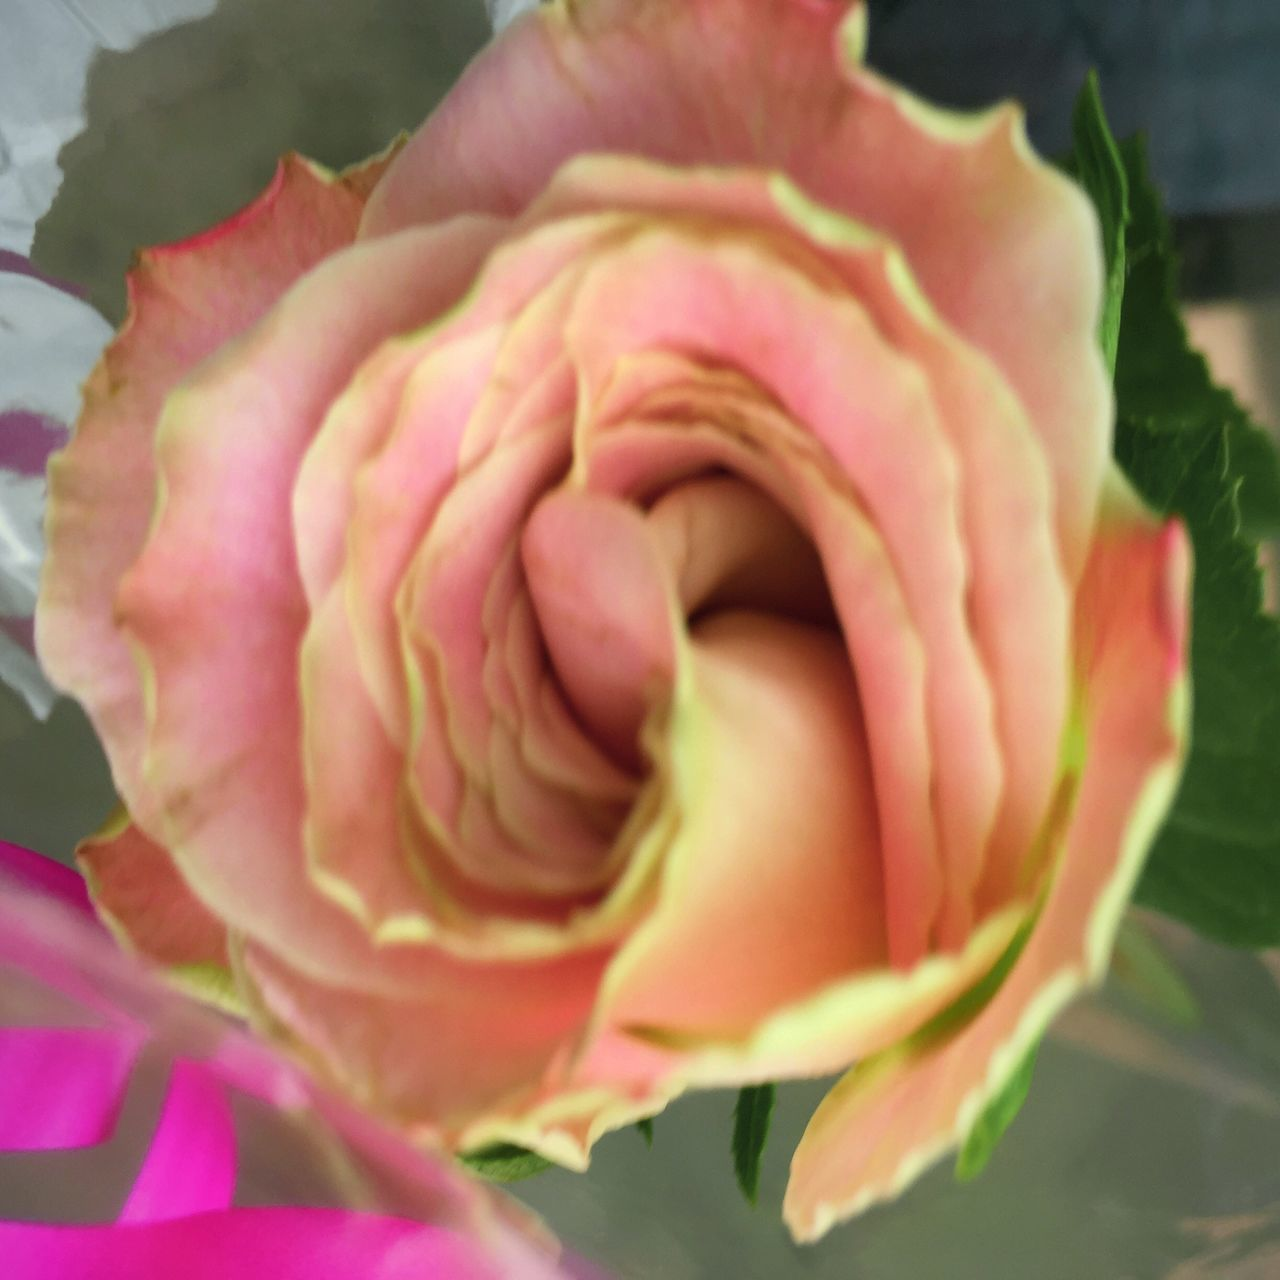 flower, petal, fragility, beauty in nature, nature, flower head, rose - flower, freshness, growth, close-up, pink color, plant, day, no people, outdoors, blooming